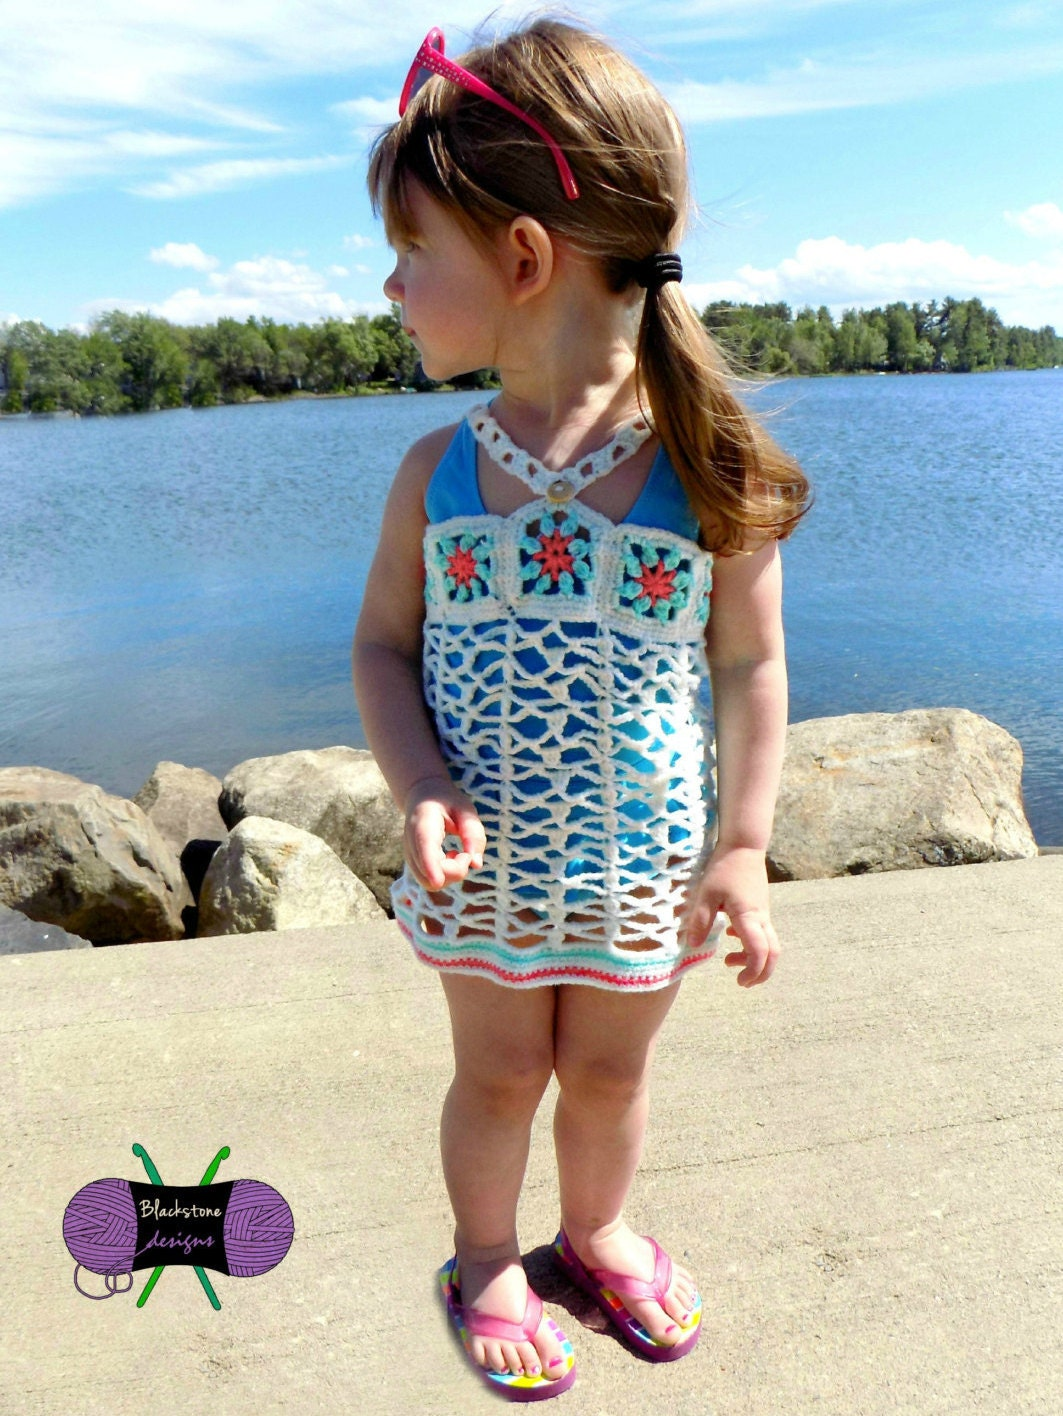 Island princess swimsuit cover pdf crochet pattern beach island princess swimsuit cover pdf crochet pattern beach ocean lake swimsuit bathing suit cover up toddler child girls swimming bankloansurffo Images